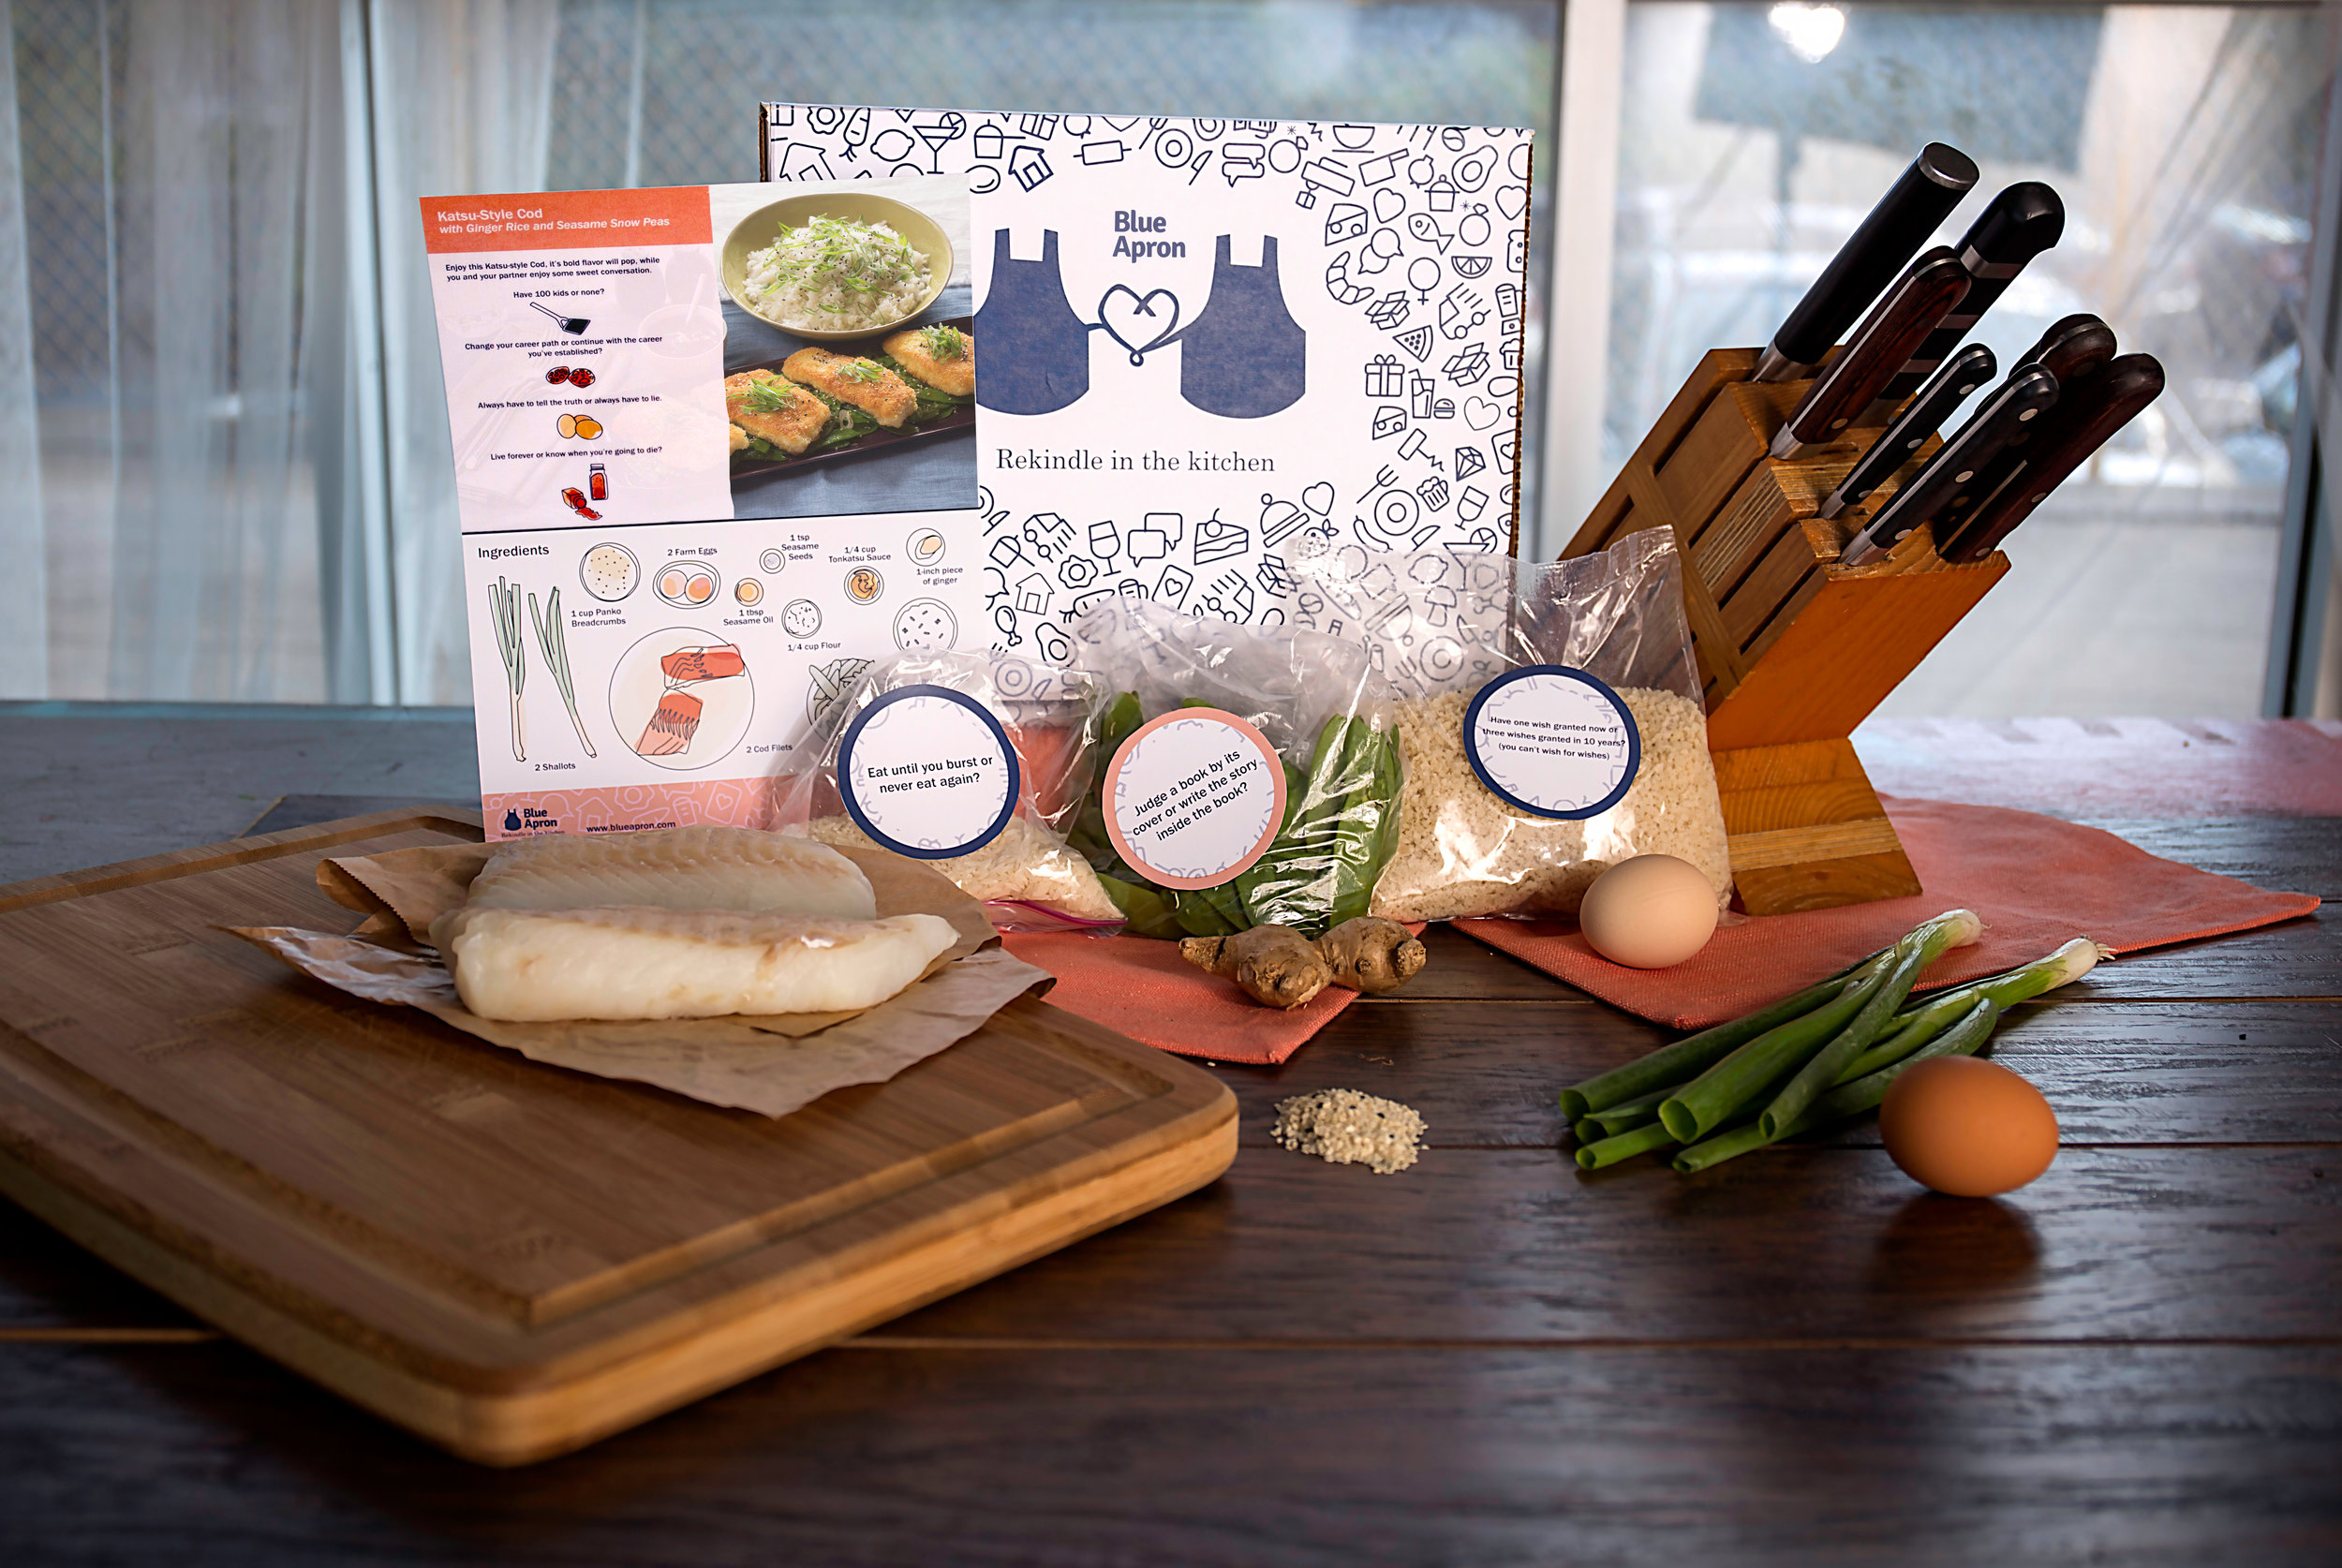 The box includes a recipe card and all the ingredients to prepare a romantic meal.